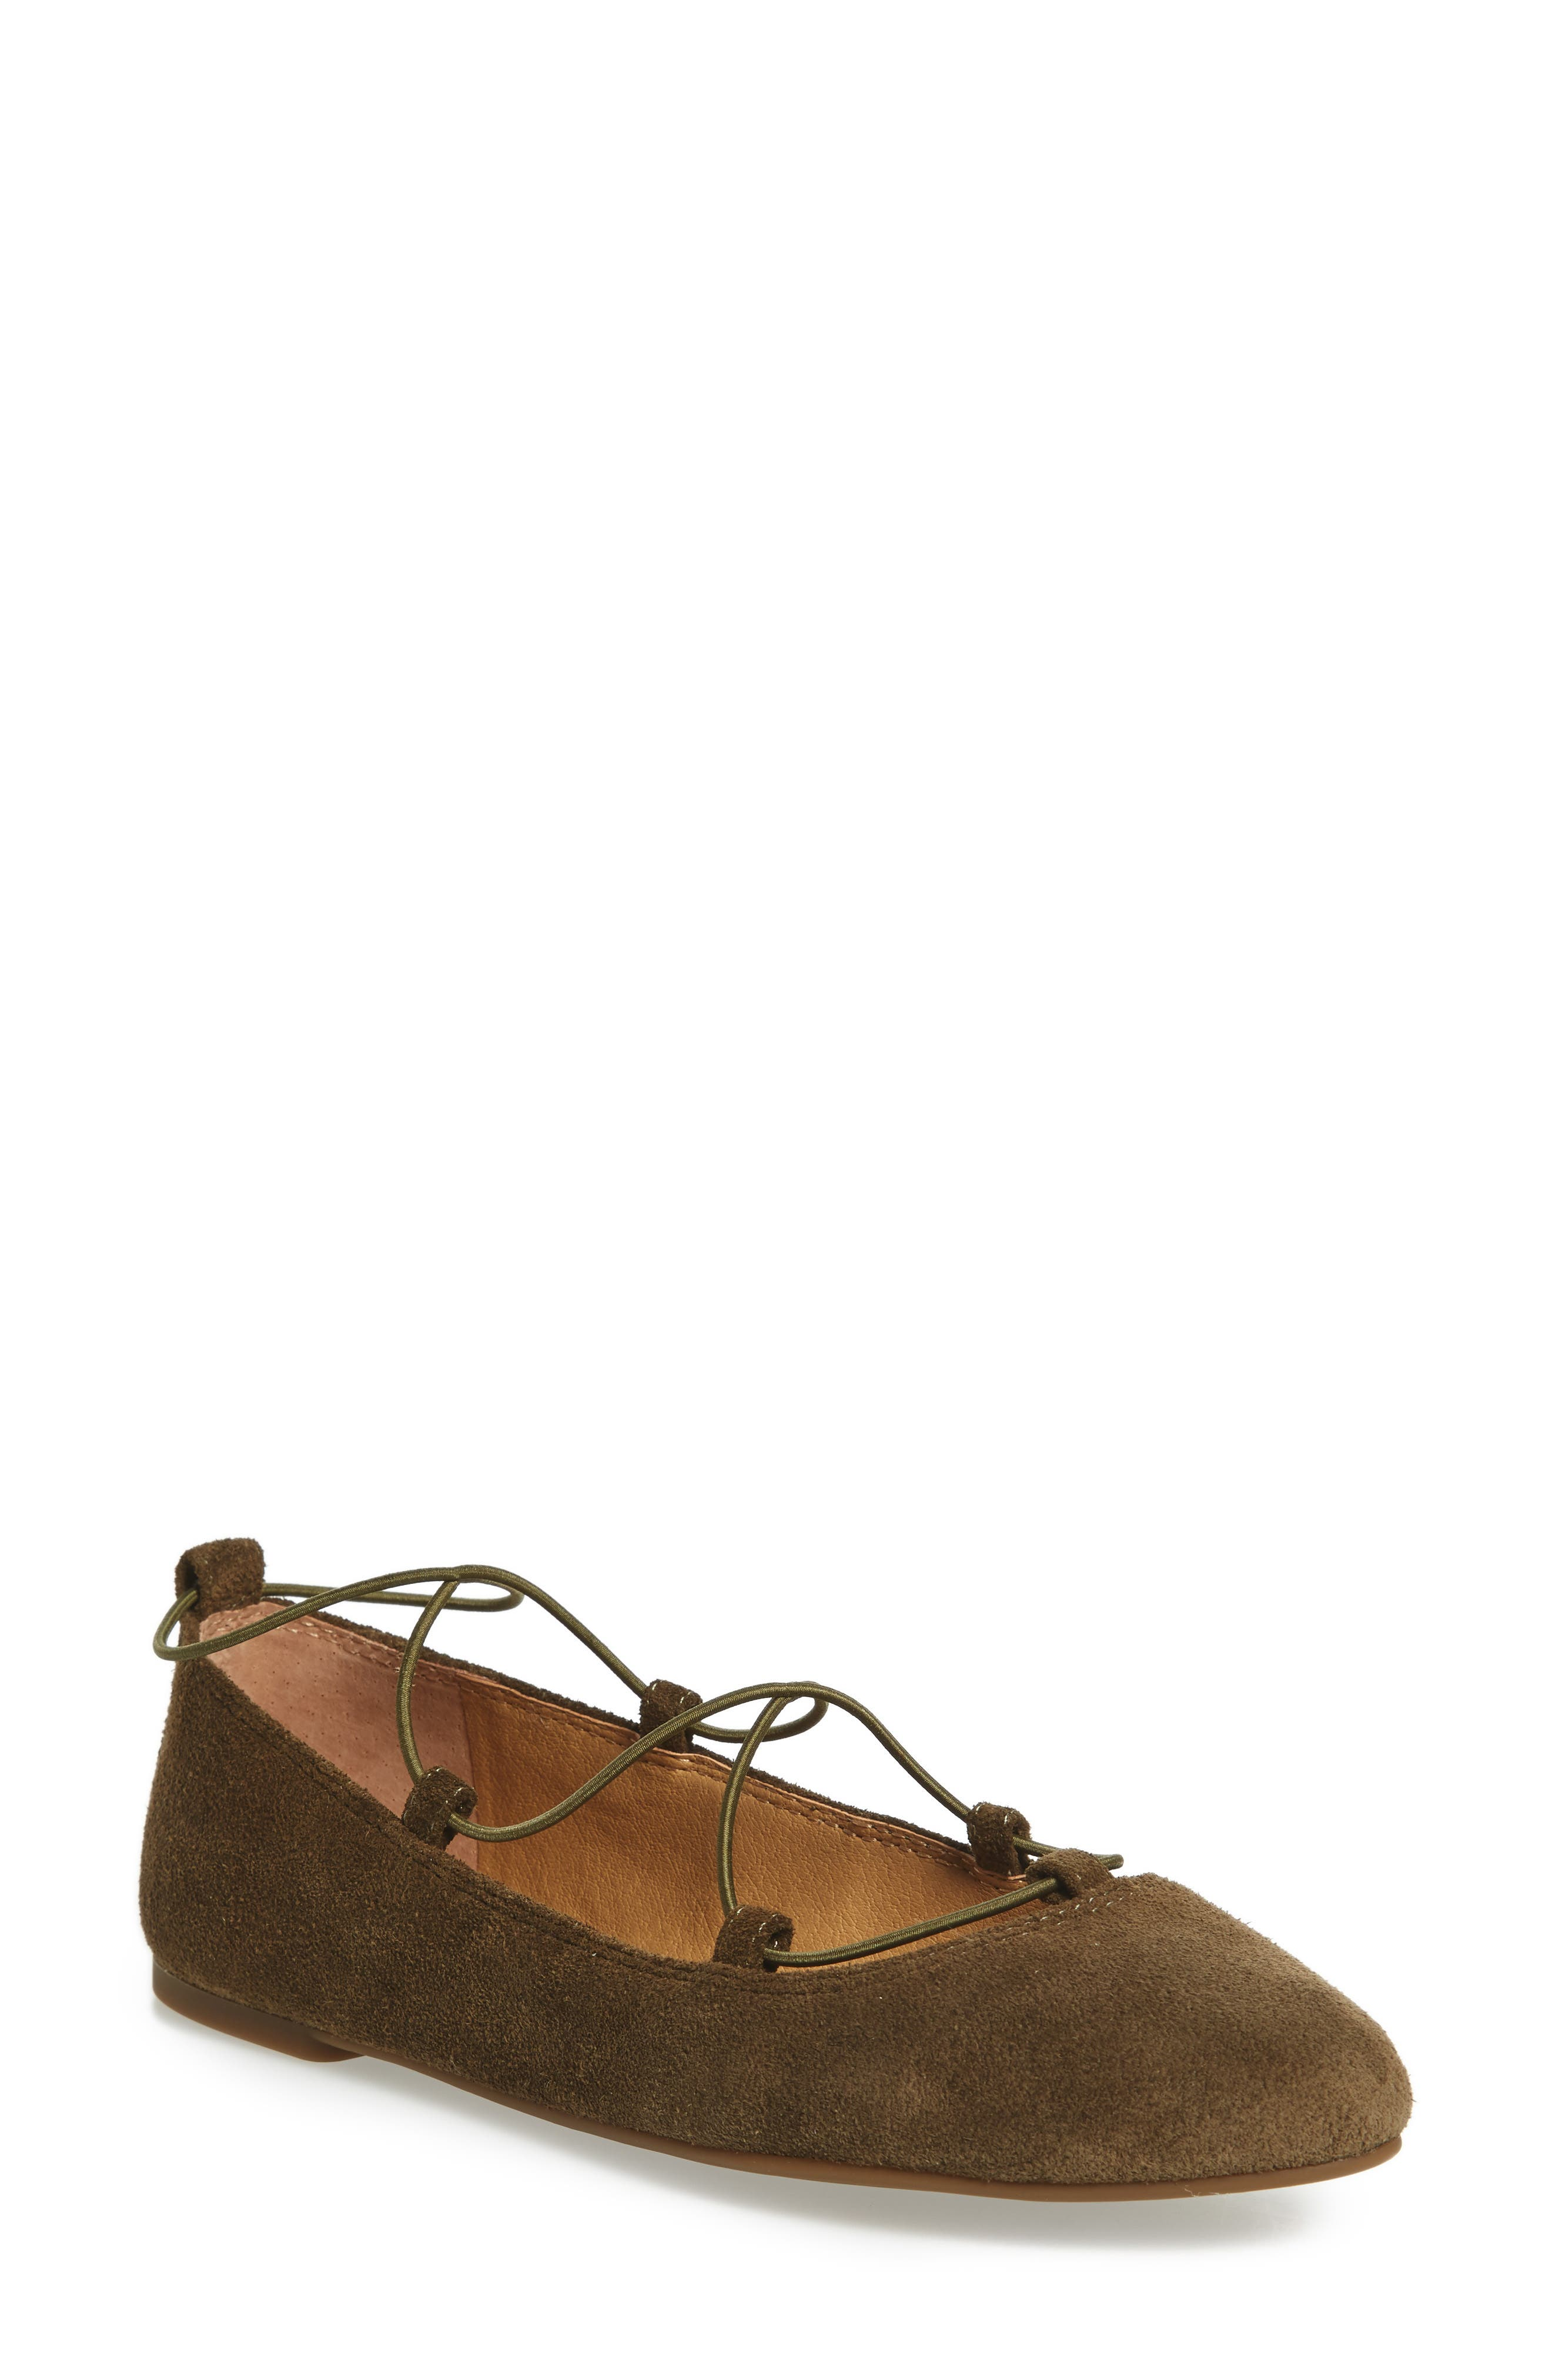 'Aviee' Lace-Up Flat,                             Main thumbnail 1, color,                             Ivy Green Suede